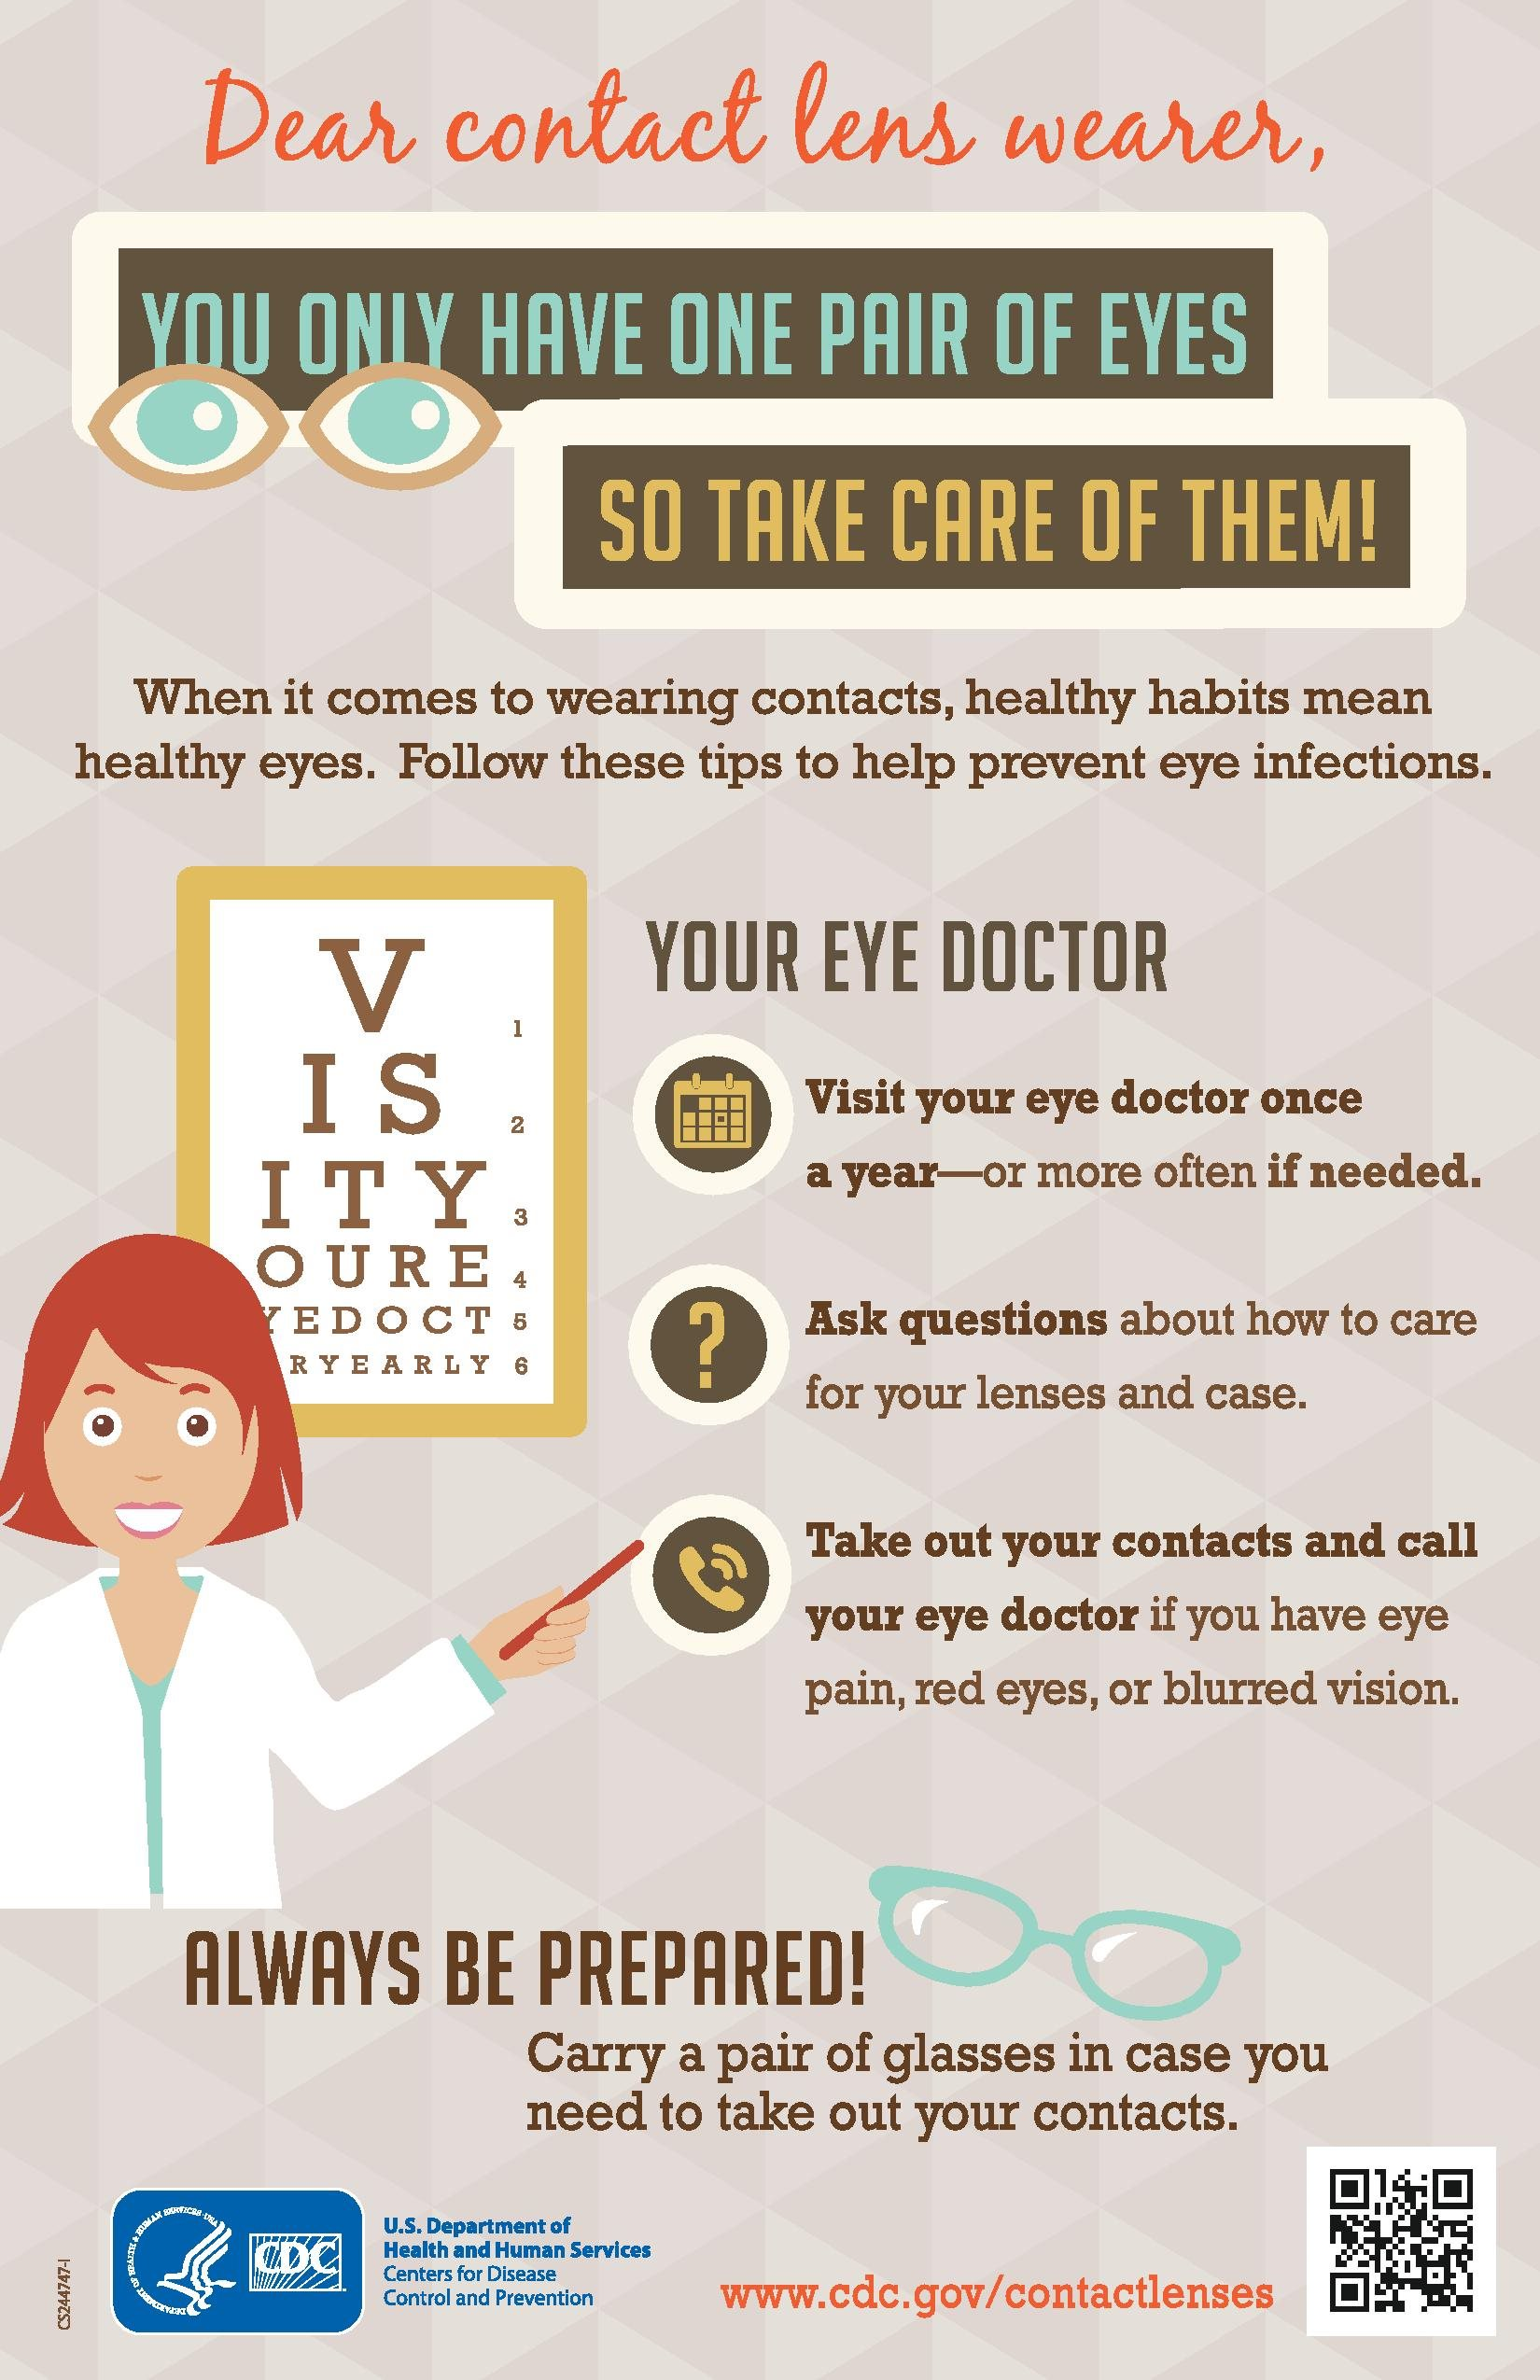 Its a new year. Take care of yourself! Get your eyes checked! 64f43e1ae9fa